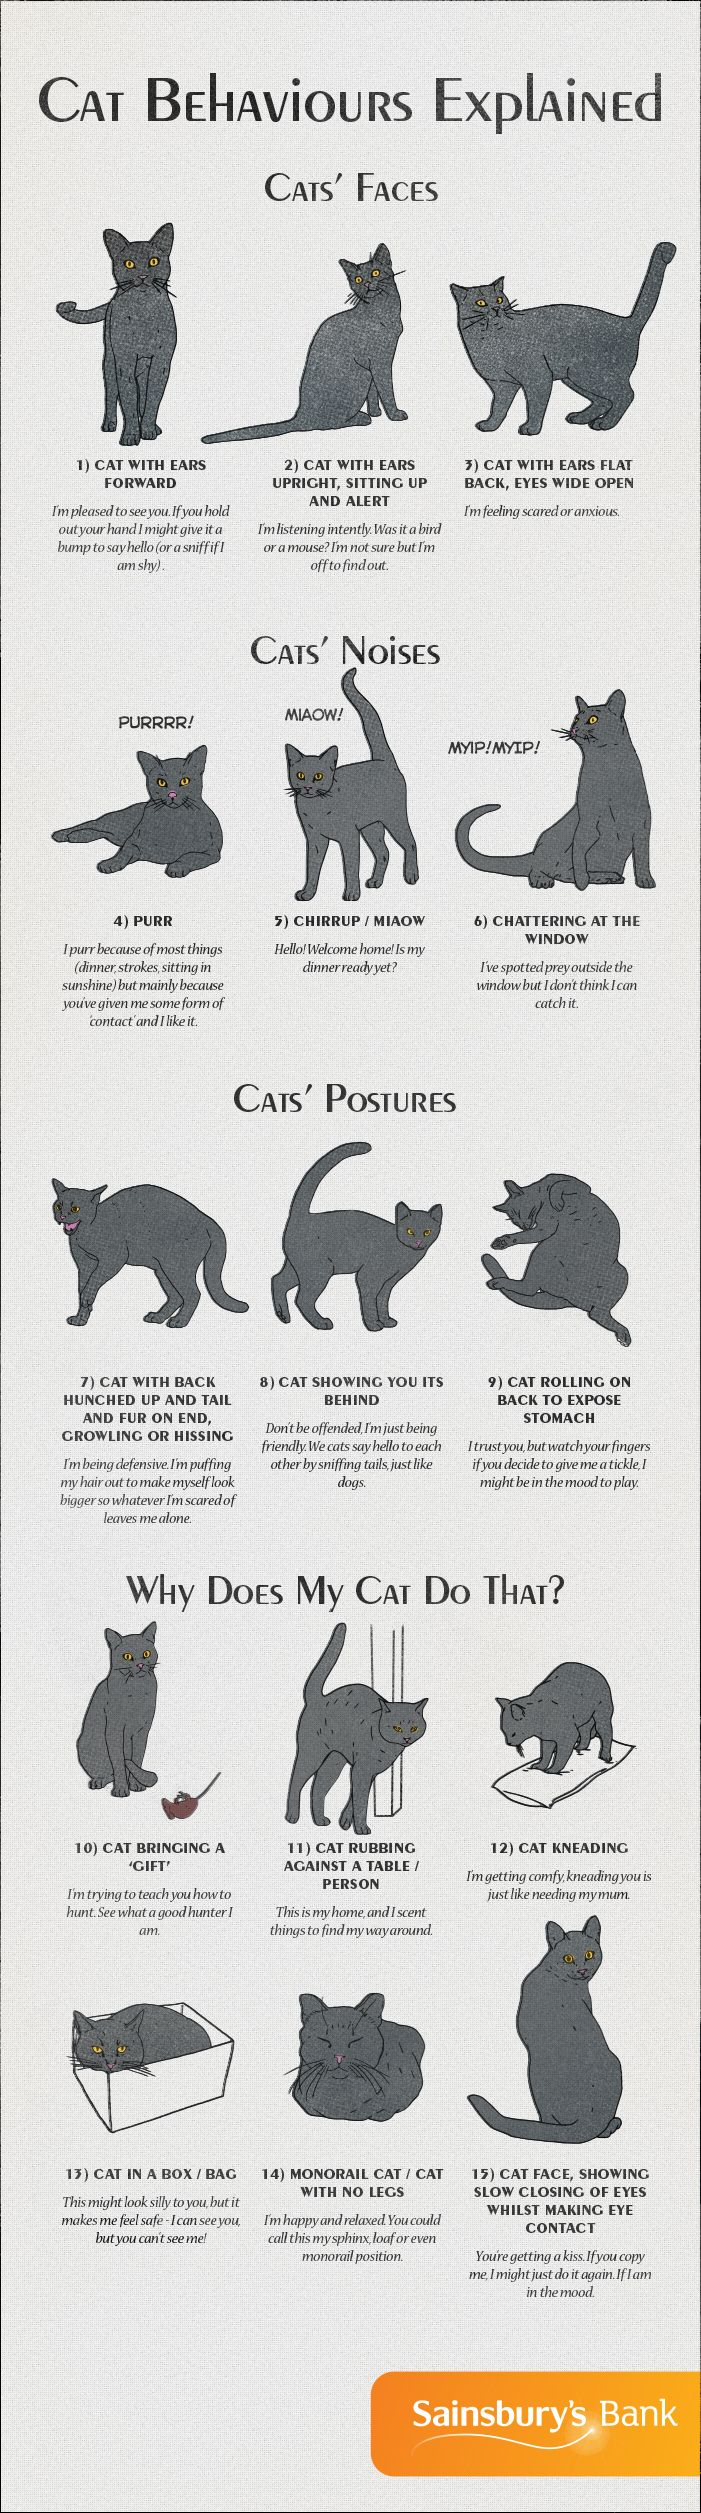 Most Affectionate Cat Breeds That Make You Fall In Love Cute Animals Cat Behavior Pets